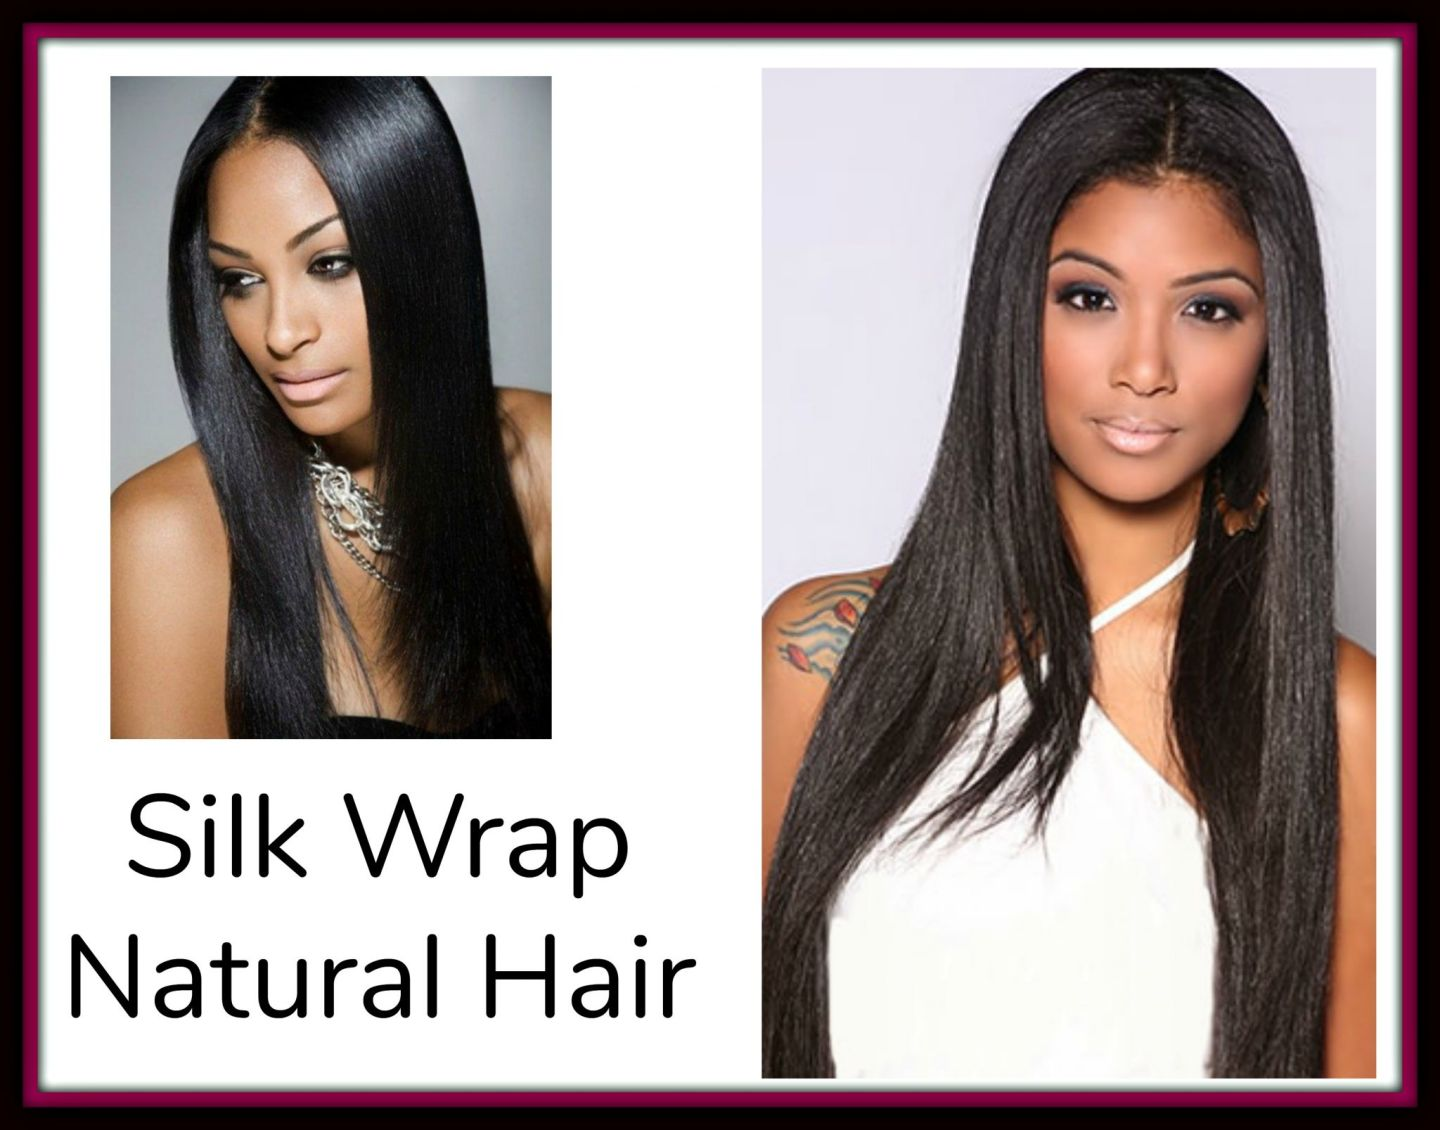 Silk Wrap Natural Hair…What The Heck Is That & Is It Healthy?